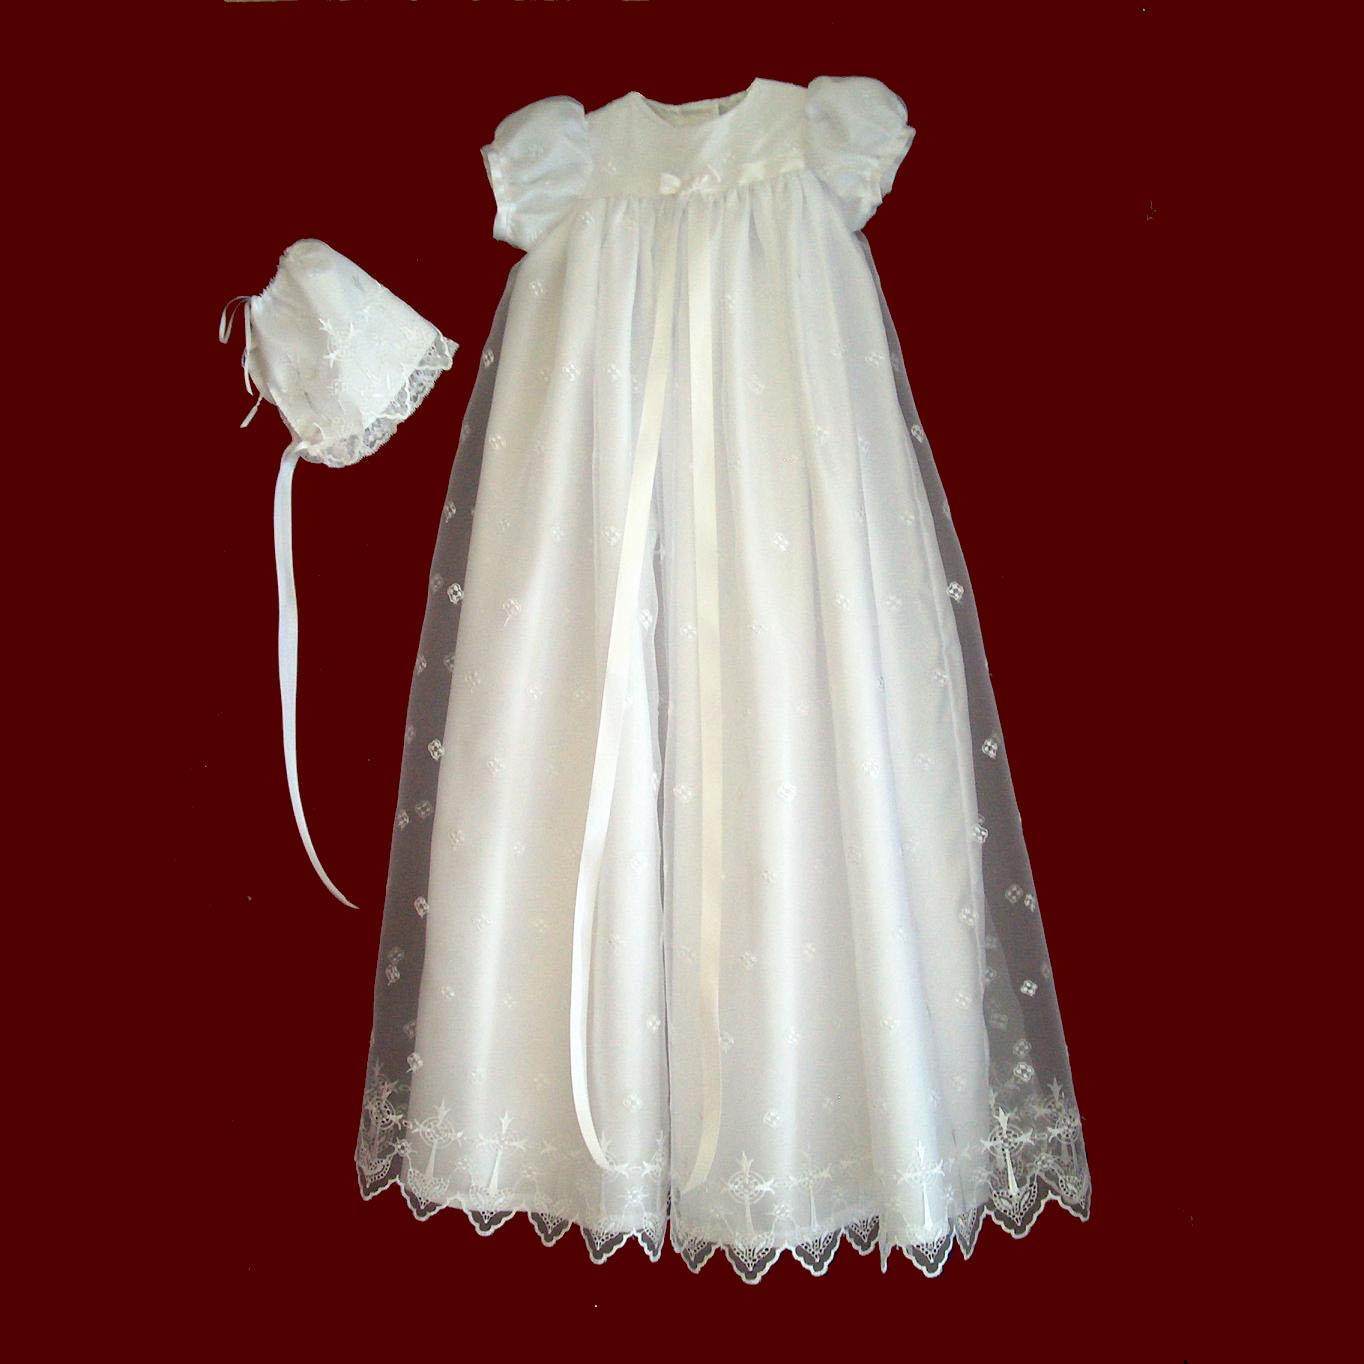 Christening Gowns From Wedding Dresses: Embroidered Organza Christening Gown With Crosses Gown